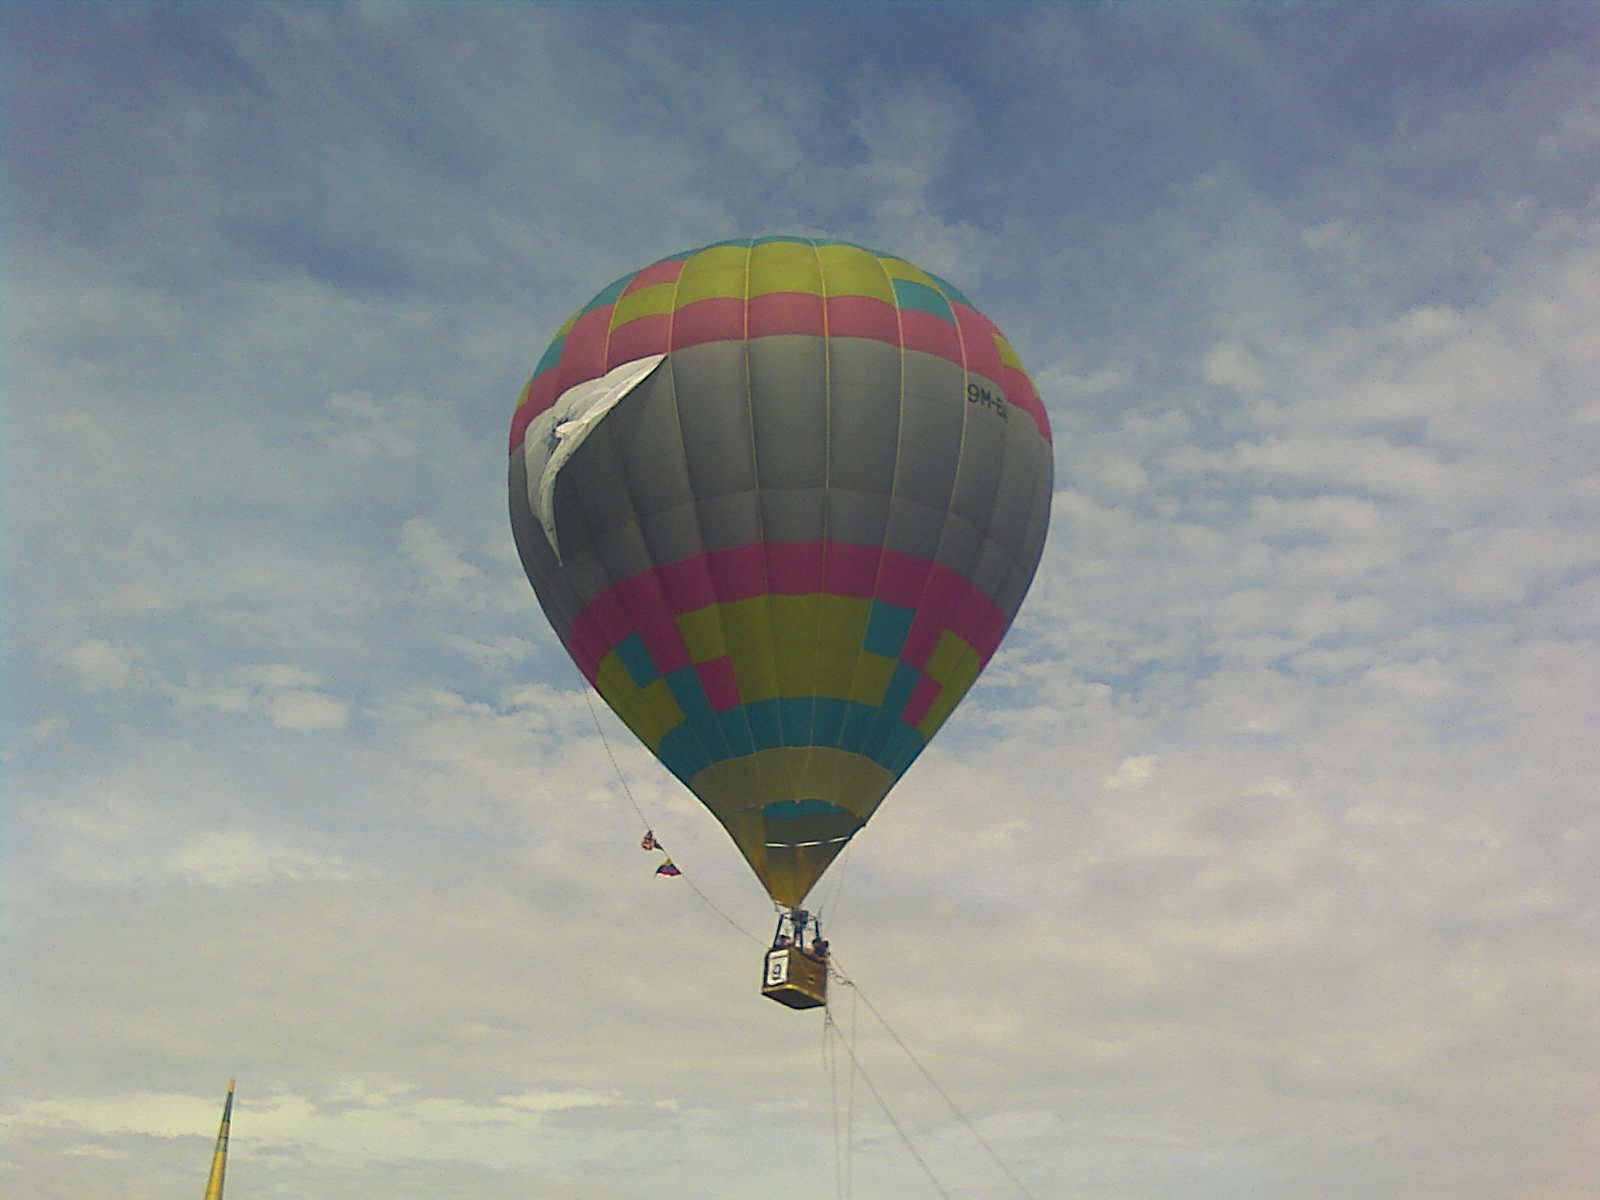 7th international hot air ballon putrajaya fiesta, Picnic Area, Helicopter Joy Rides, Shows and Performances,Extreme Zone, Kids Play Area, events, travel, tourism, march 2015, putrajaya international hot air ballon fiesta 2015     Night Glow